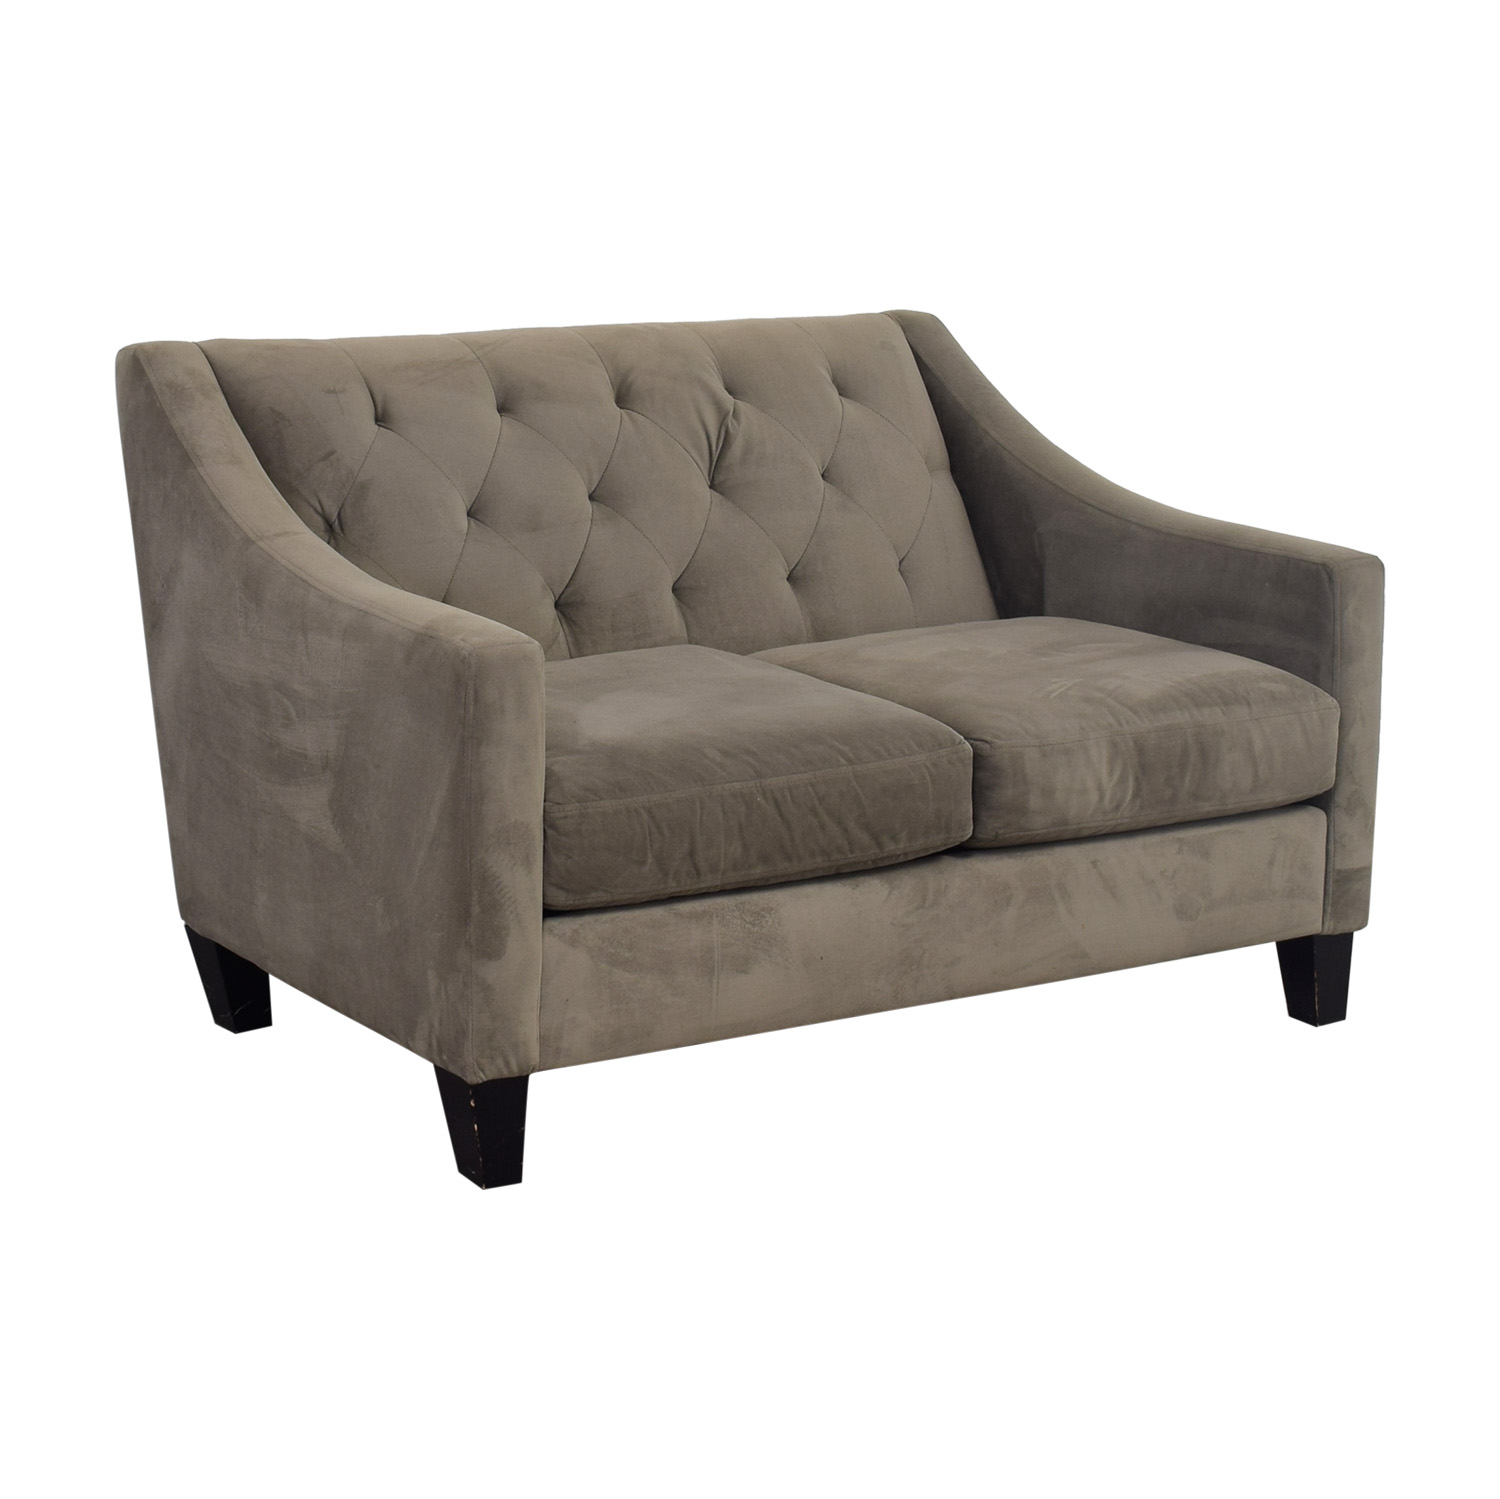 63 off better by design better by design grey tufted